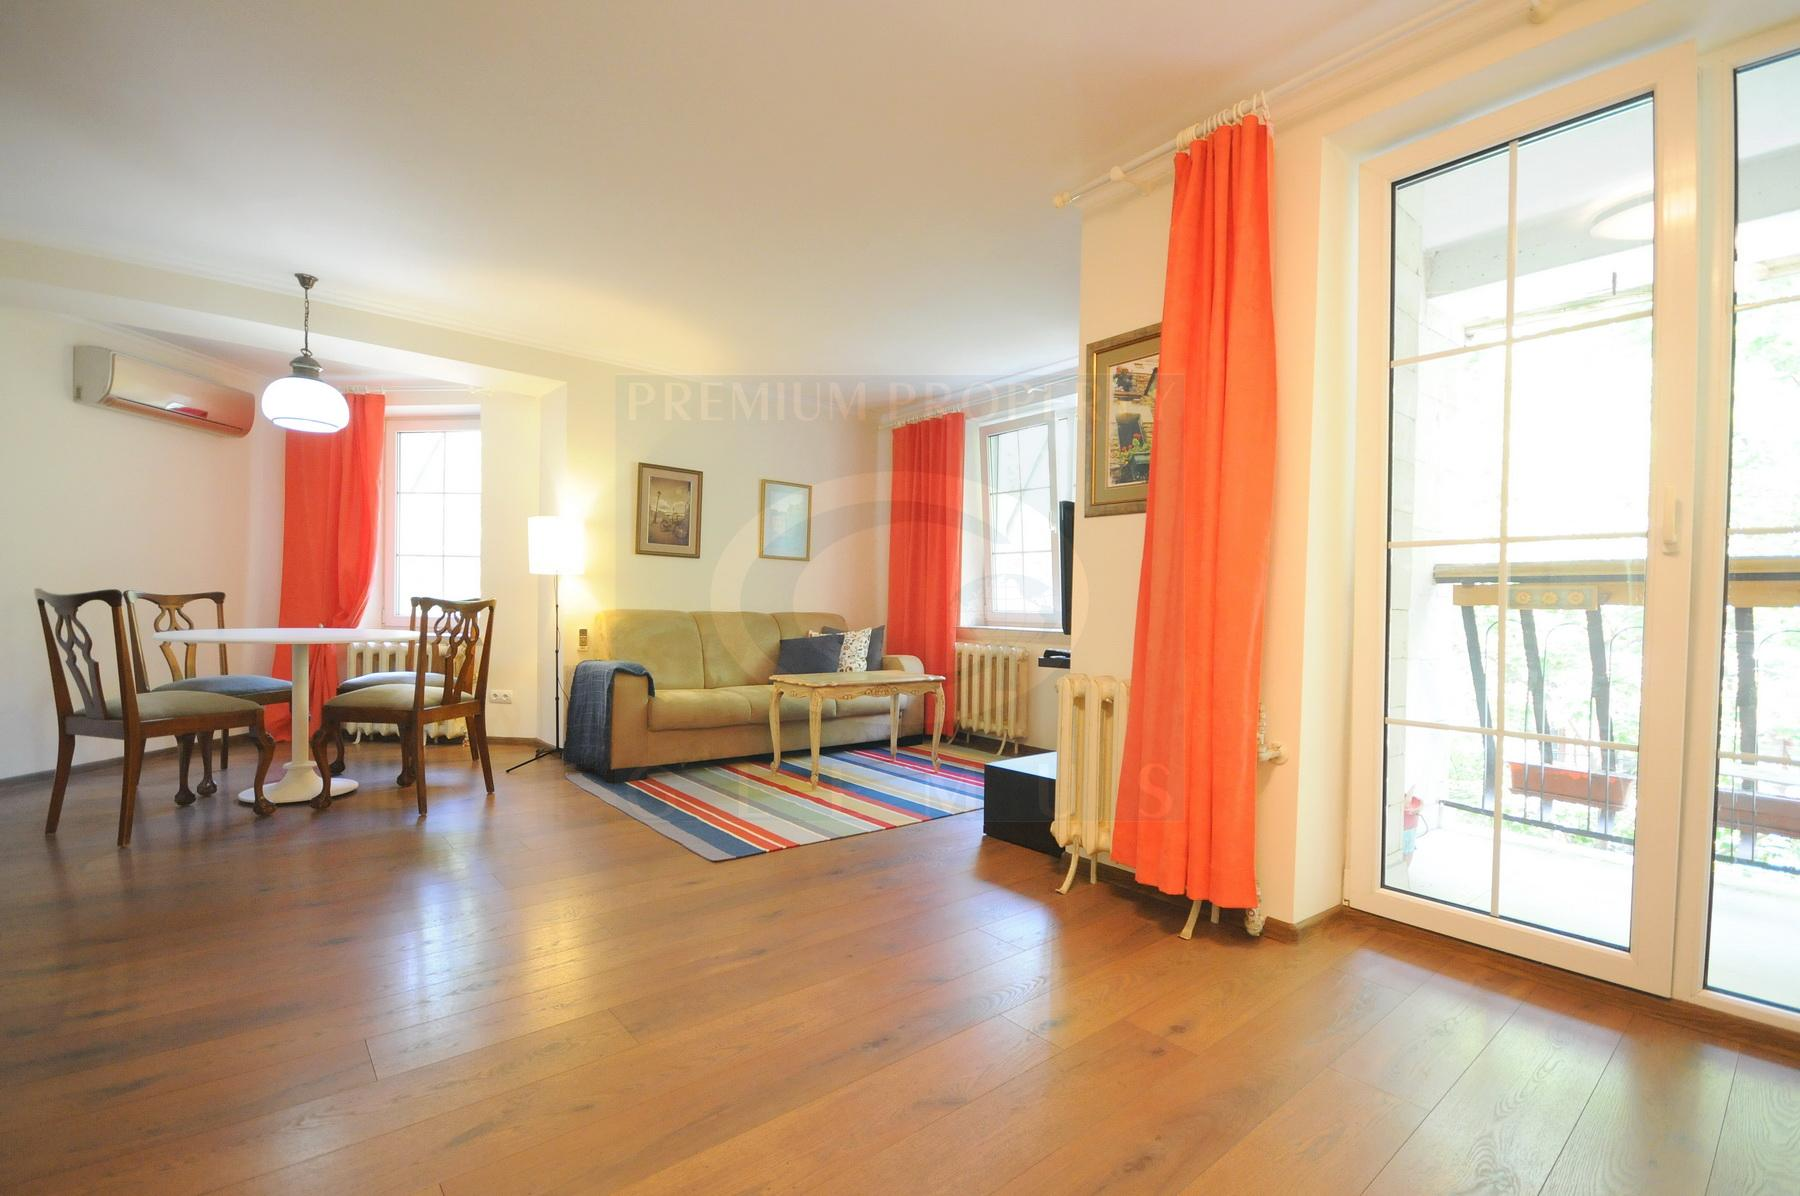 Cozy apartment near St. Pantheleimon church